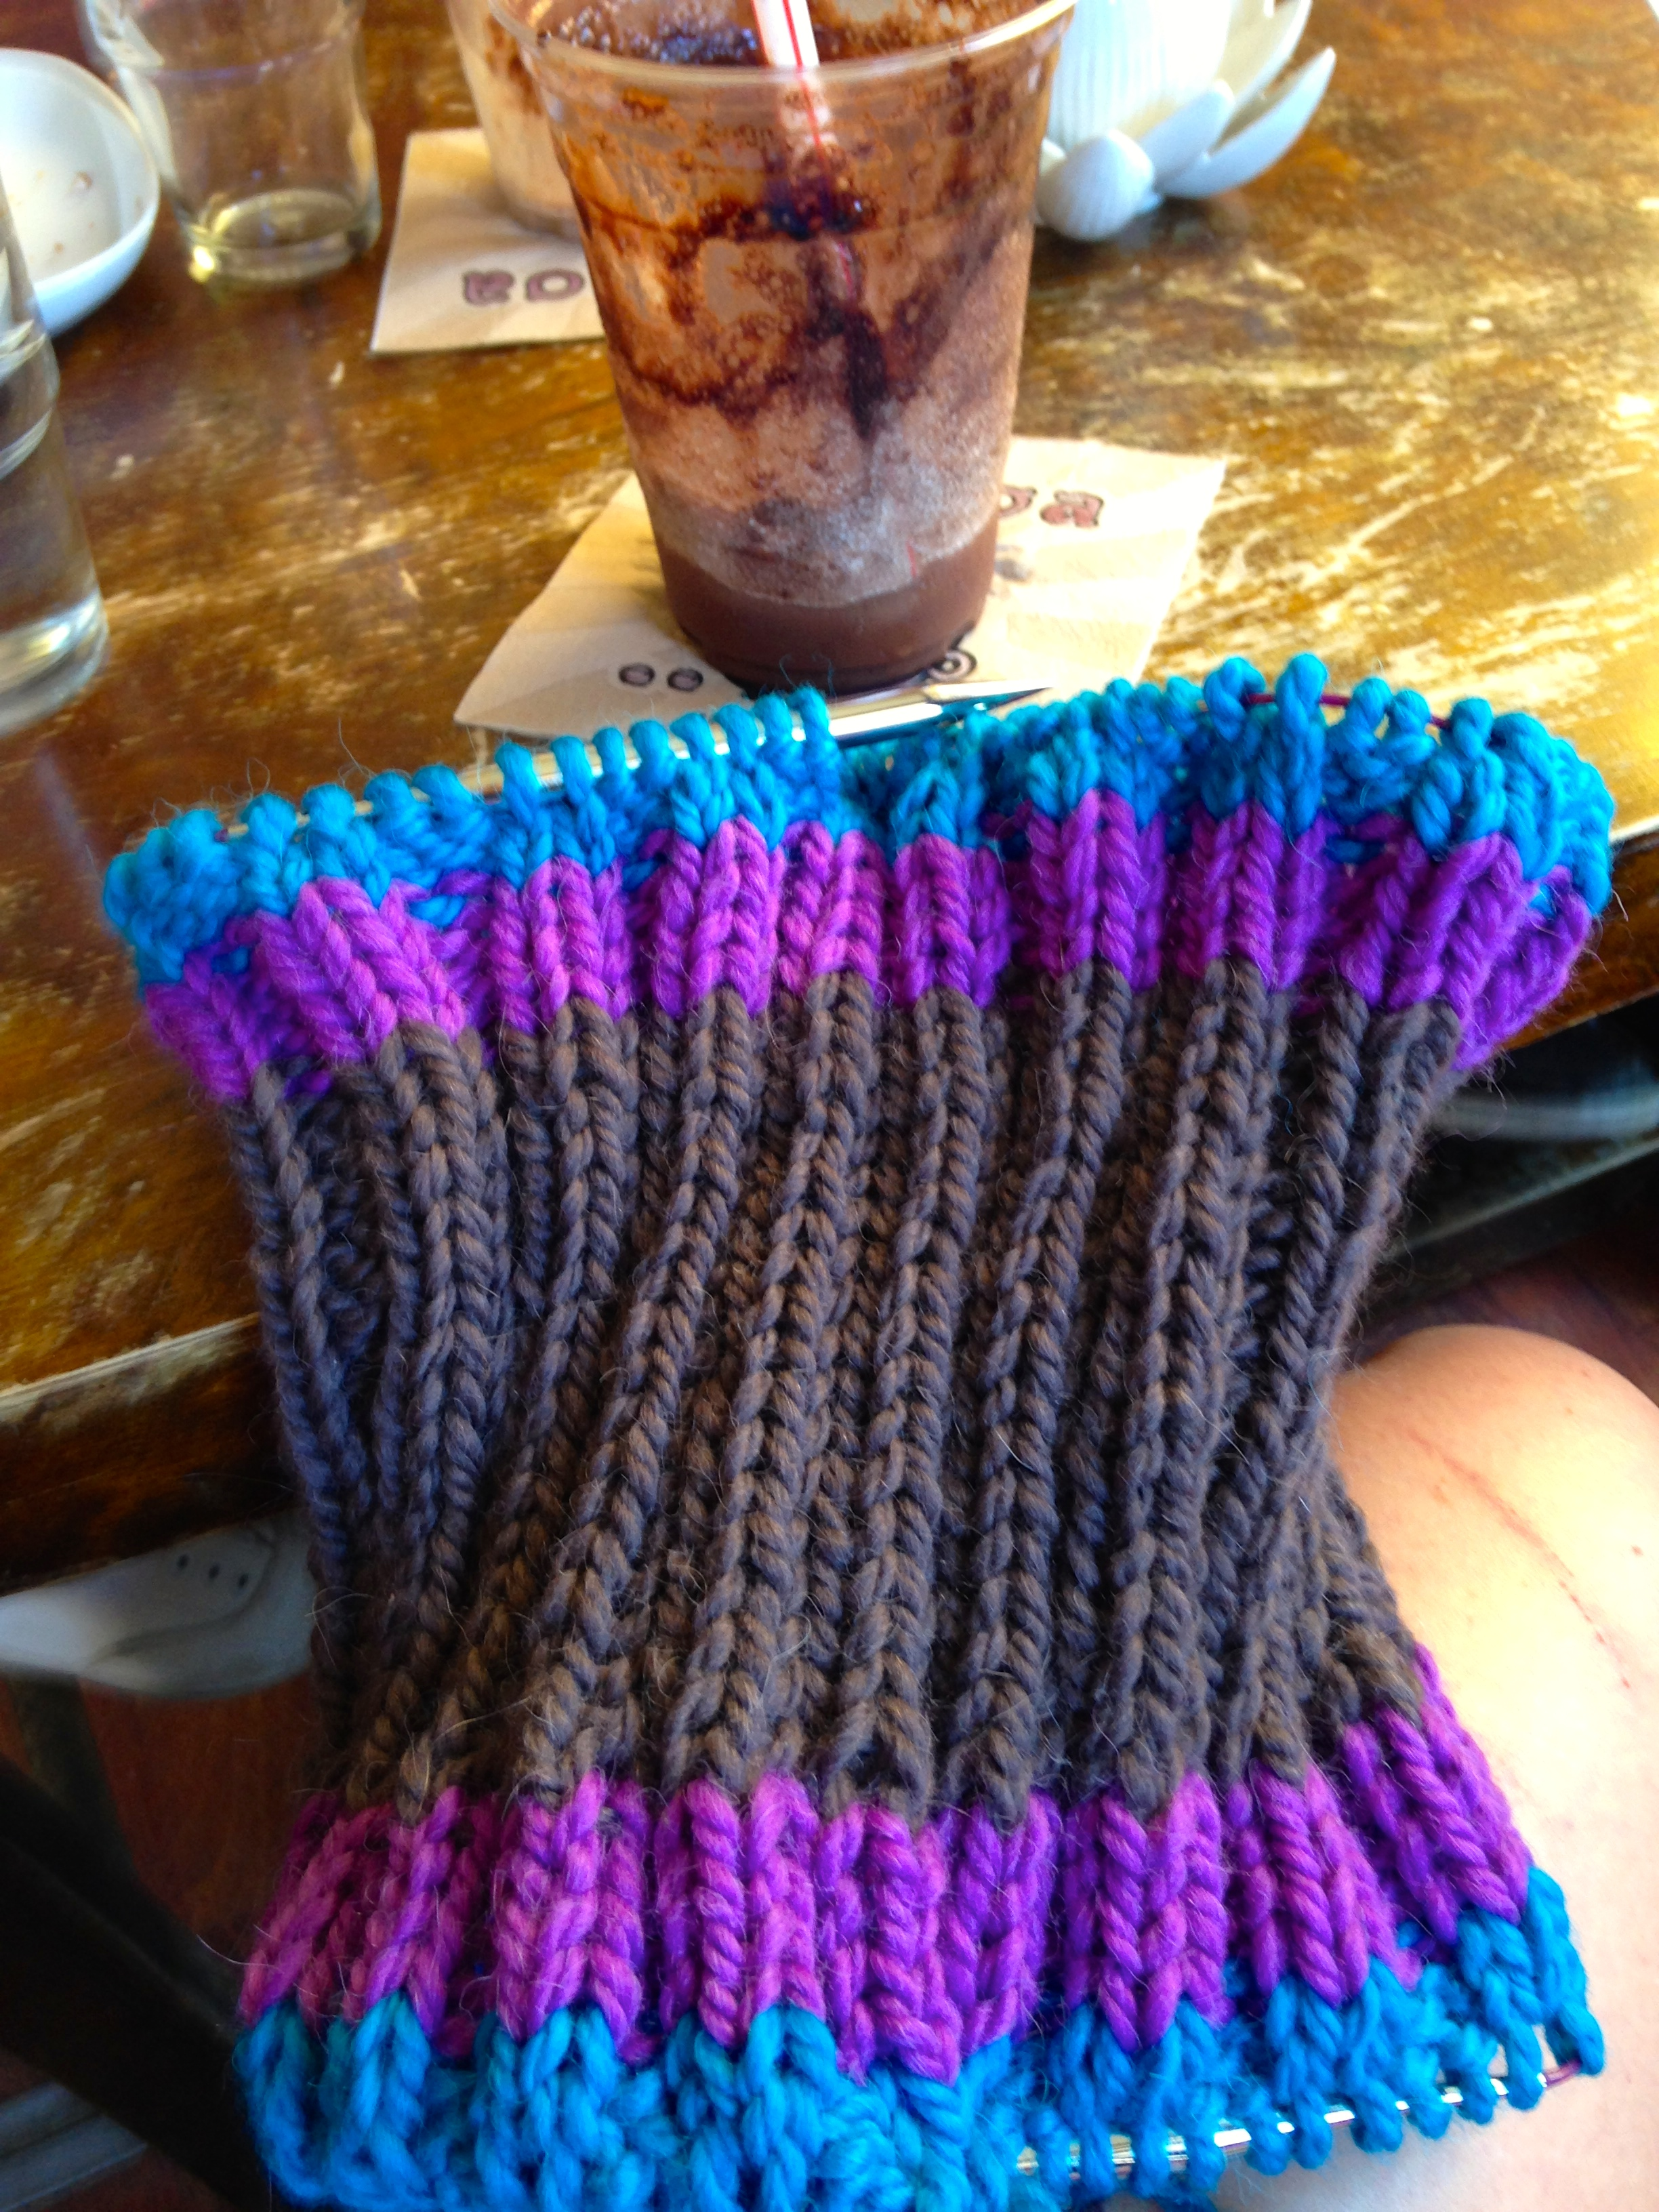 A cowl in the making